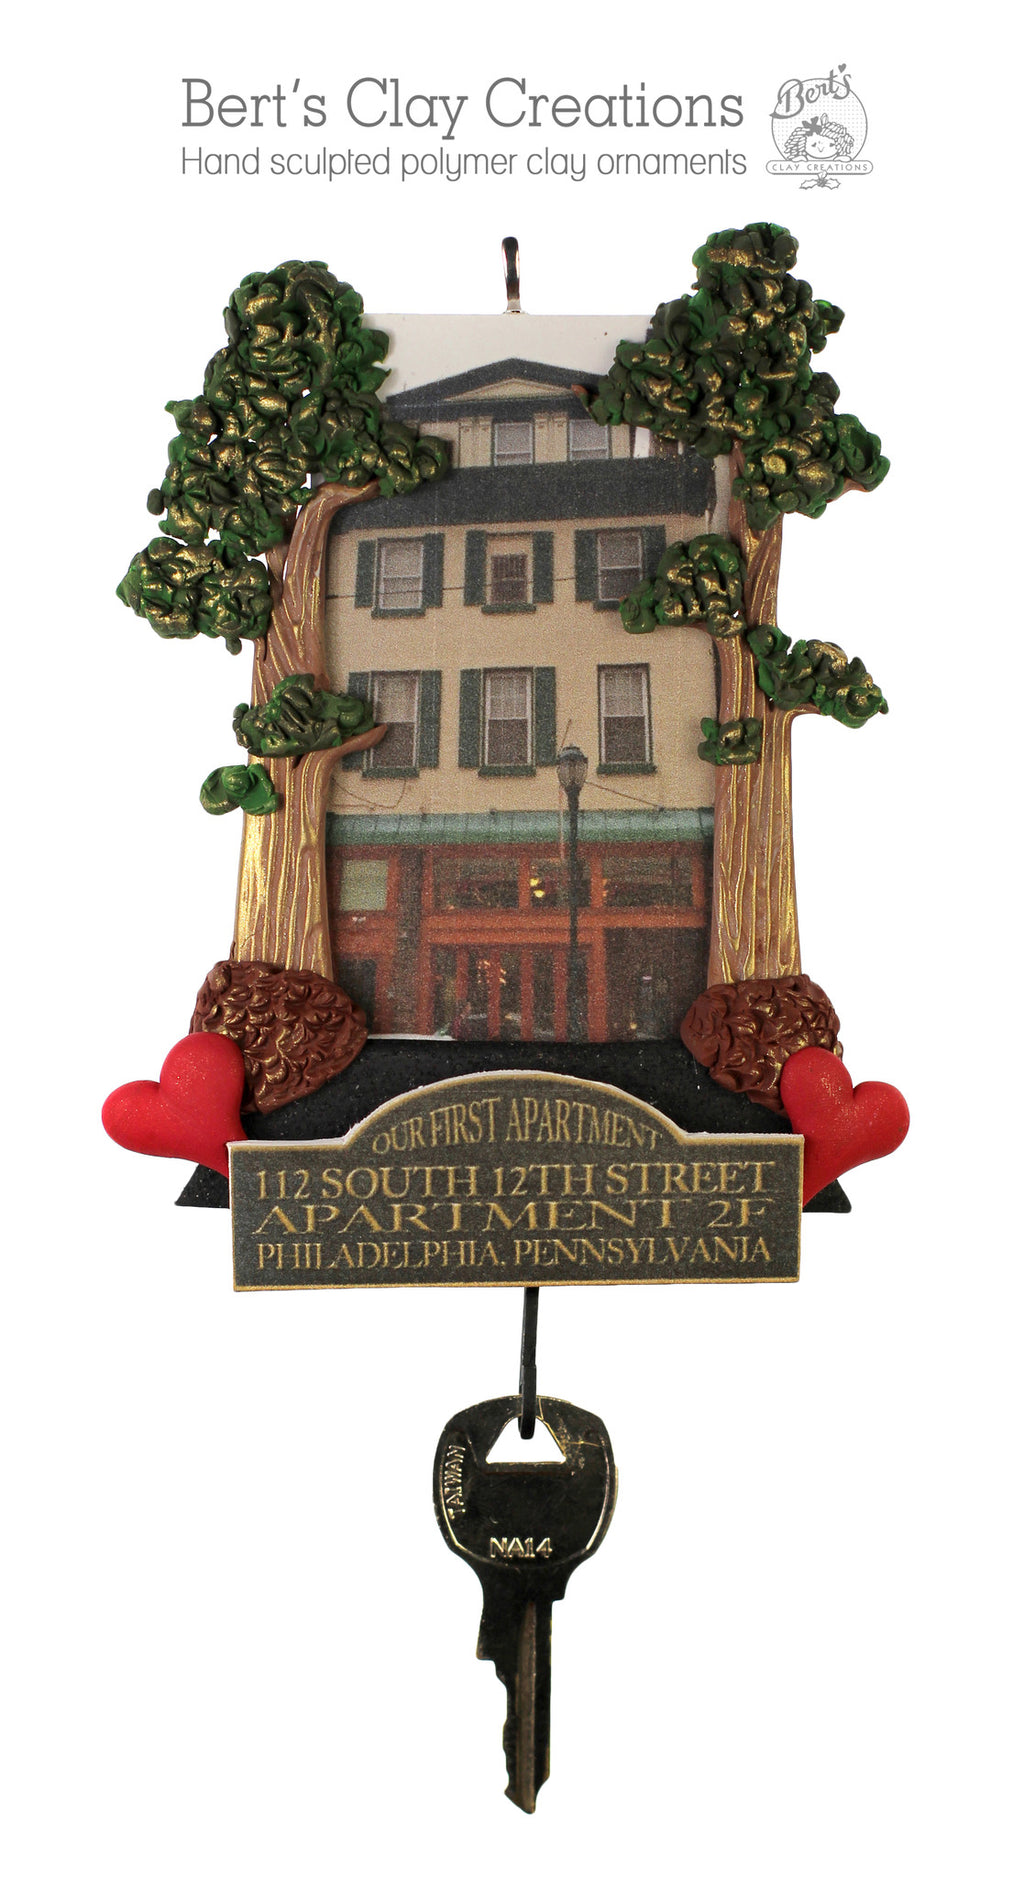 Home Ornament - Bert's Clay Creations